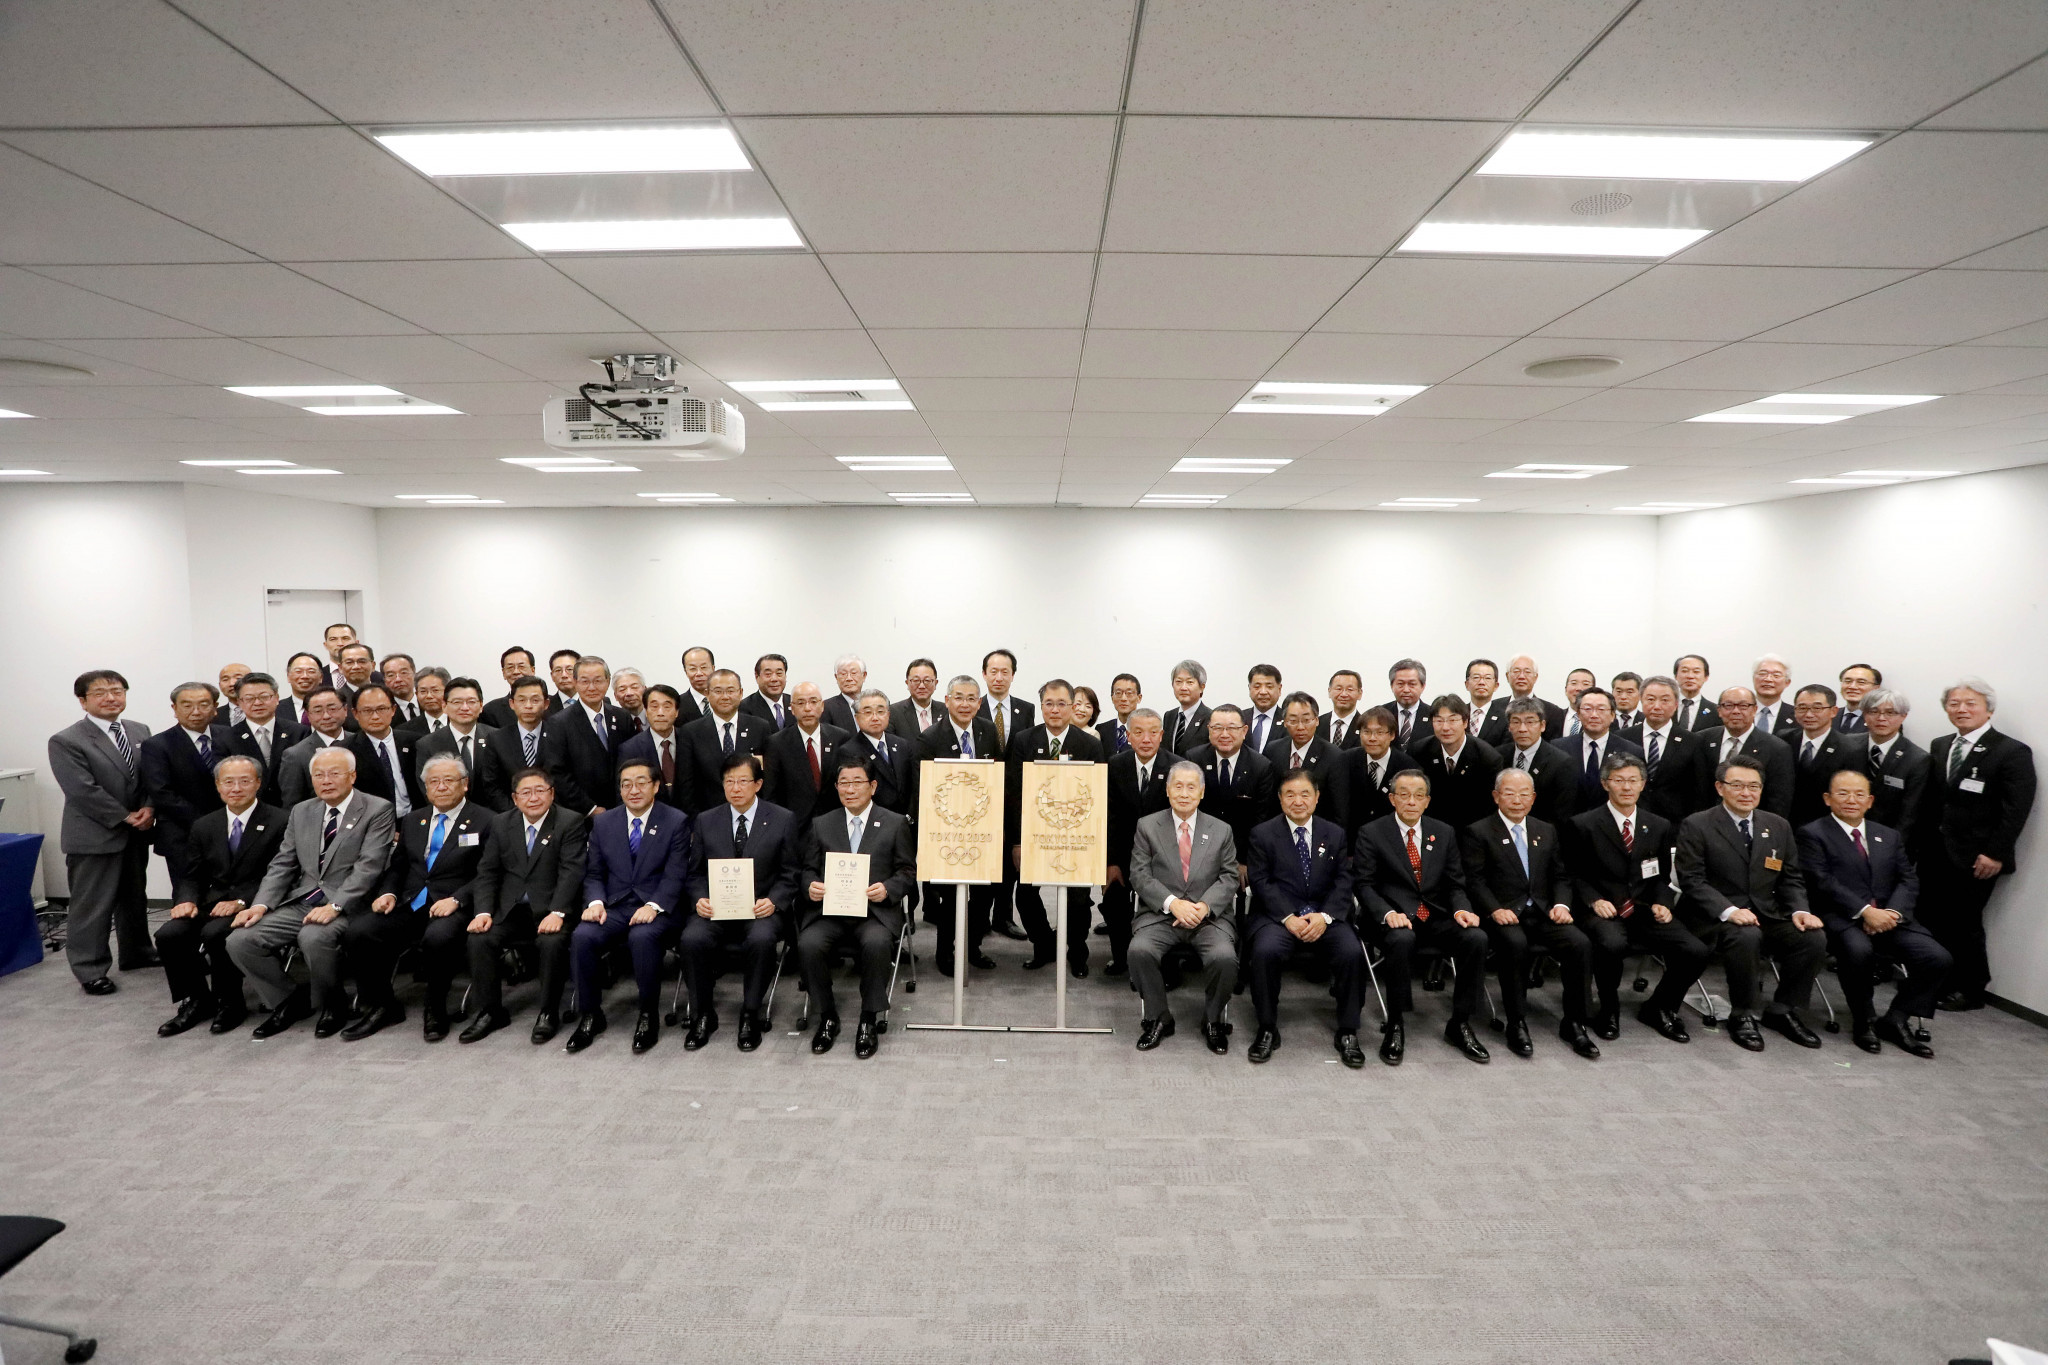 The unveiling of the emblems took place in a ceremony in Tokyo ©Tokyo 2020